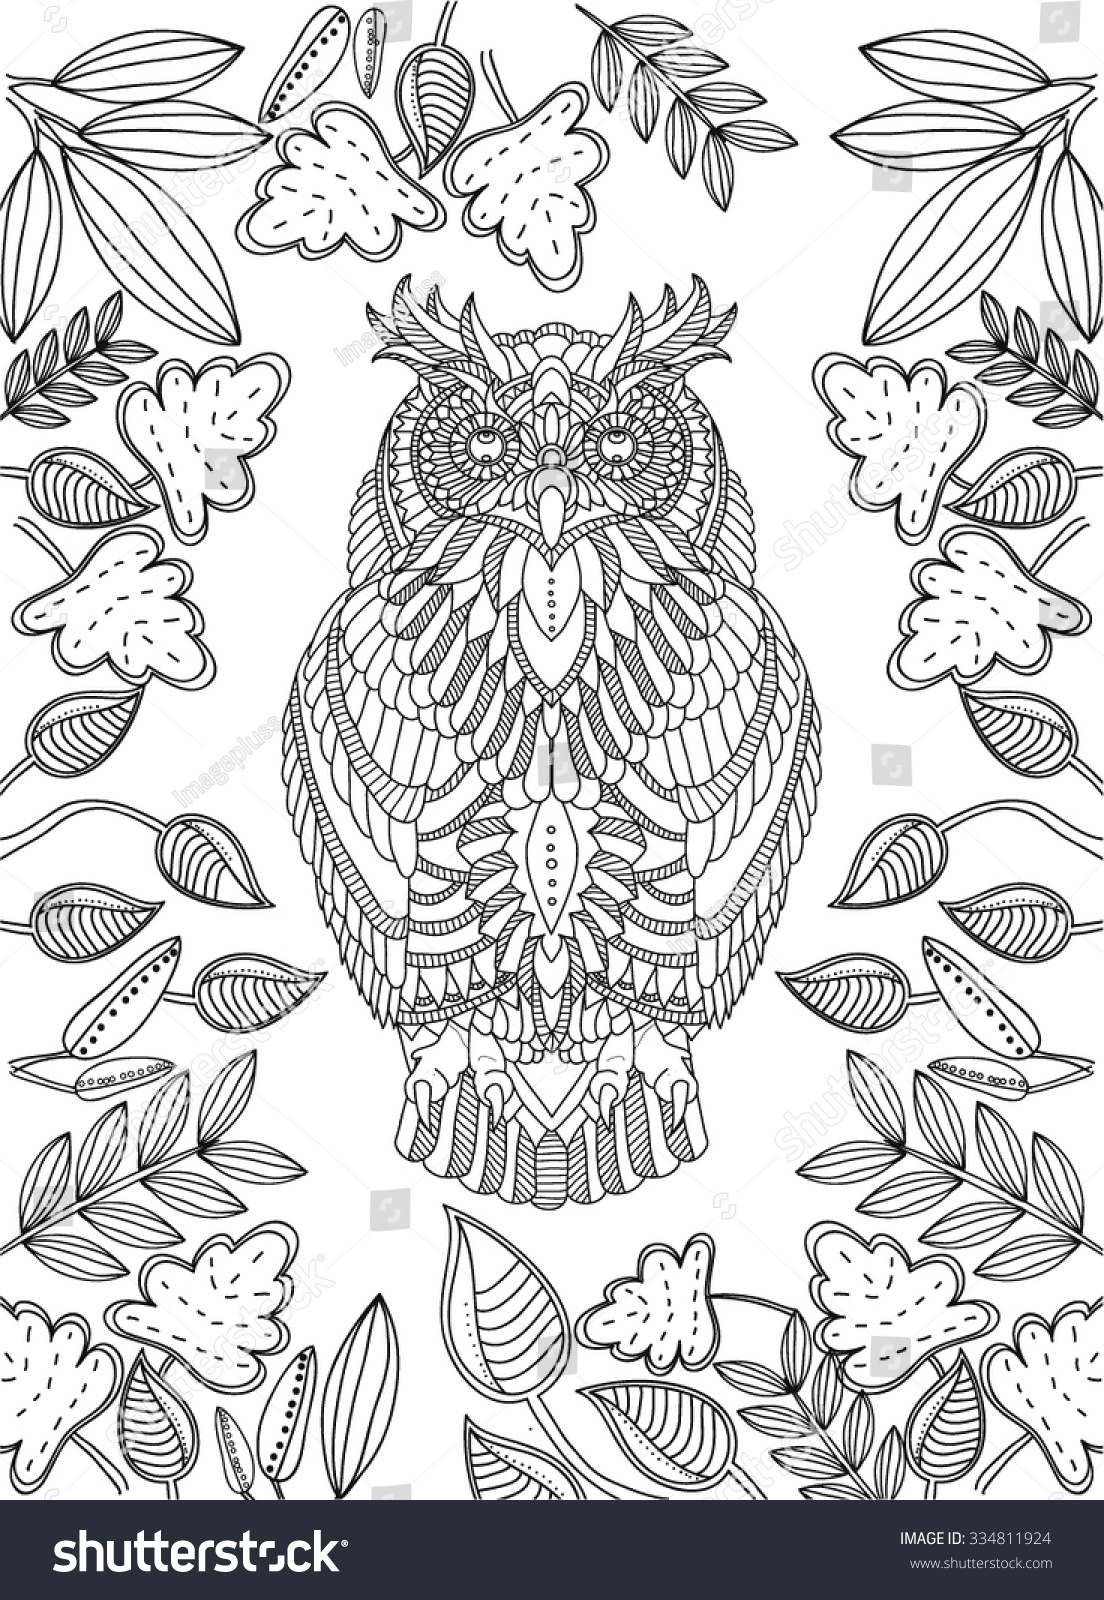 hand drawn owl coloring page stock vector 334811924 shutterstock